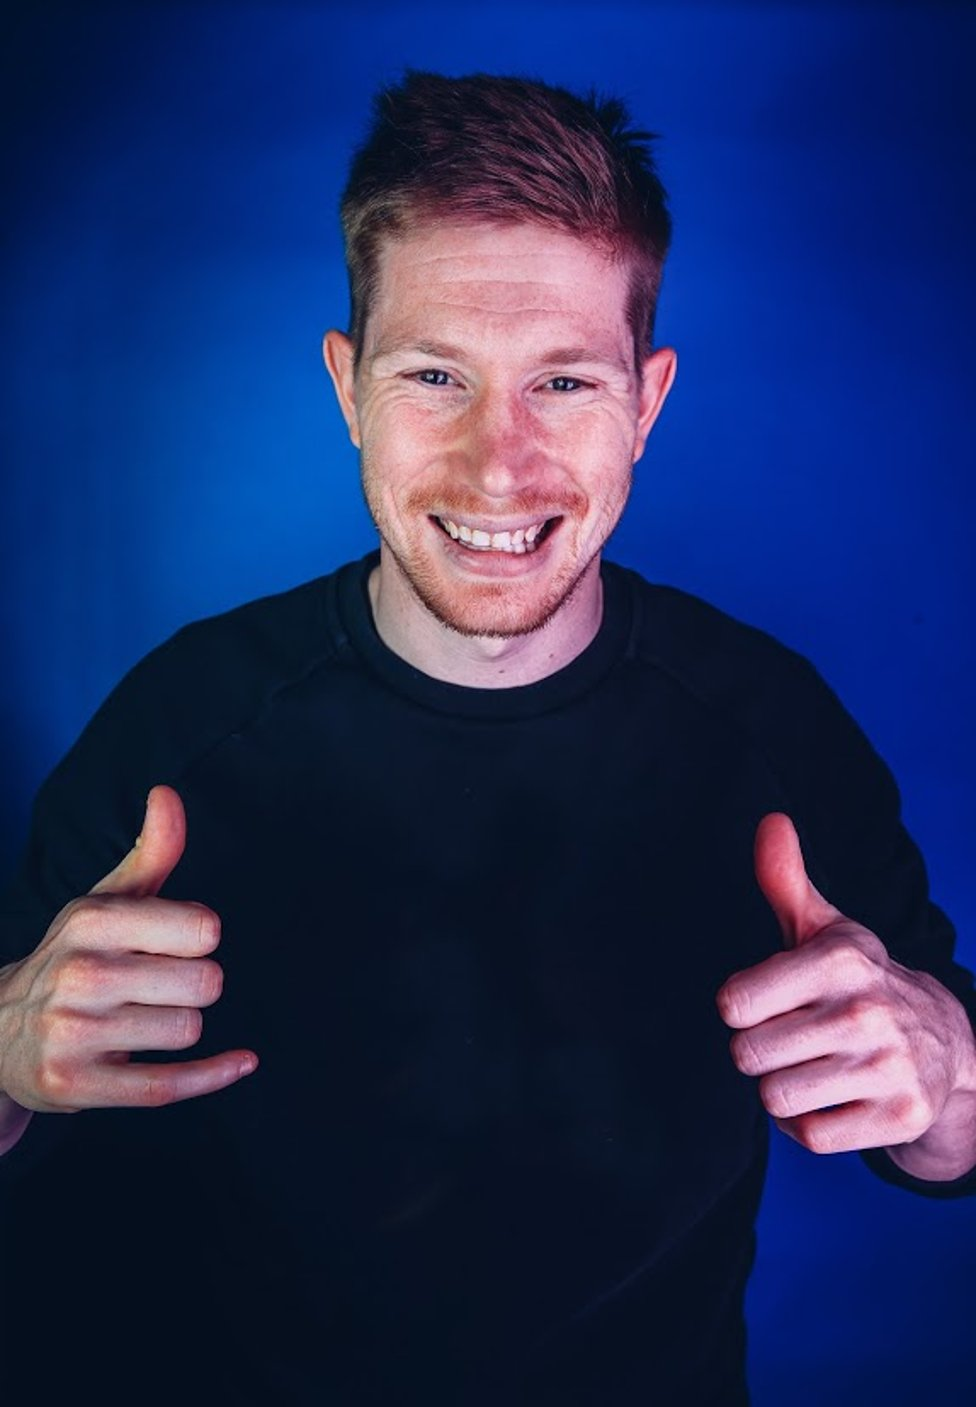 THUMBS UP: De Bruyne had every reason to celebrate having helped City to regain the Premier League title and retain the Carabao Cup